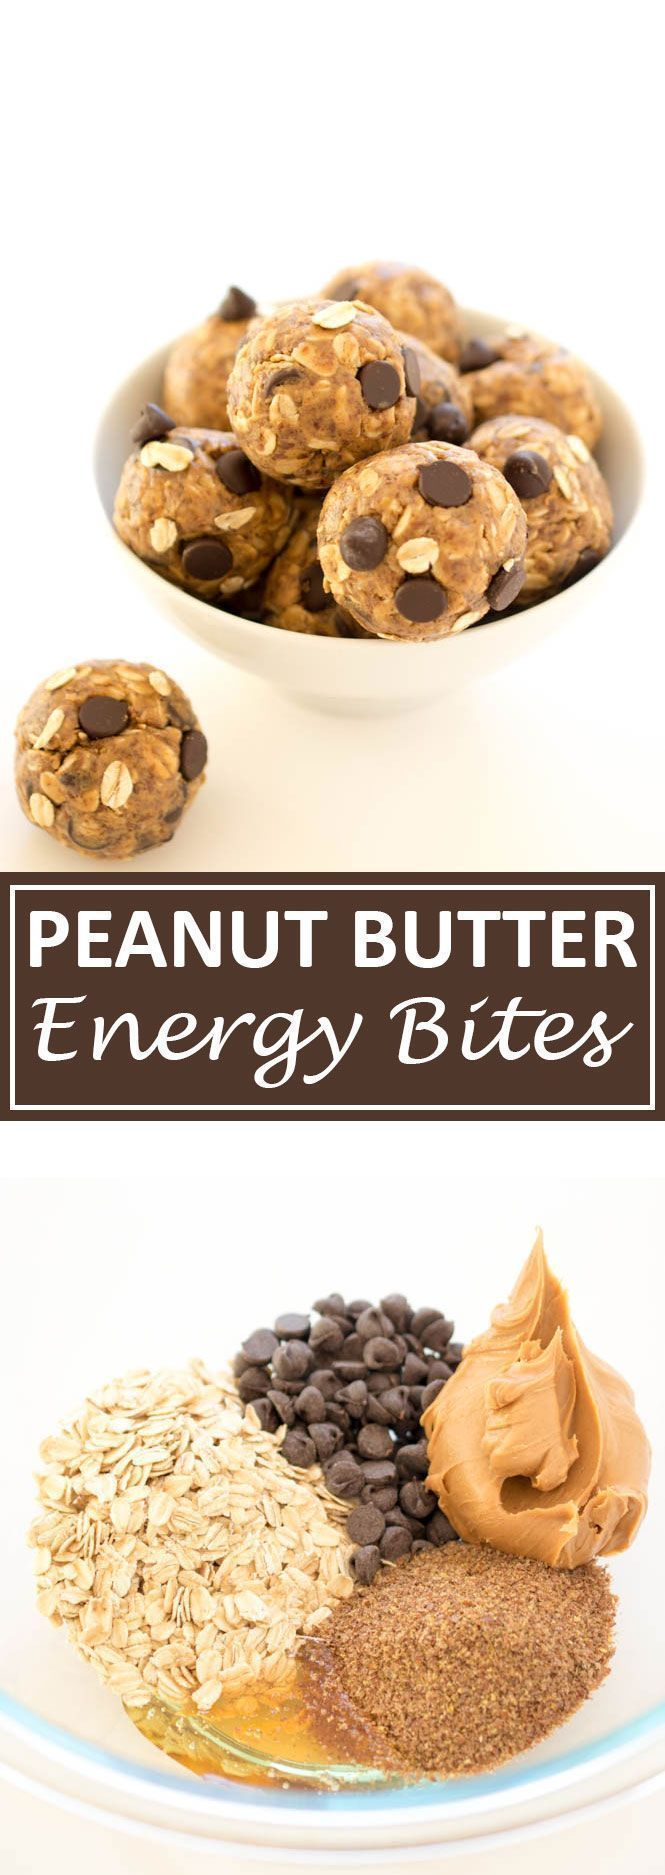 5 Ingredient Peanut Butter Energy Bites (VIDEO) - Chef Savvy